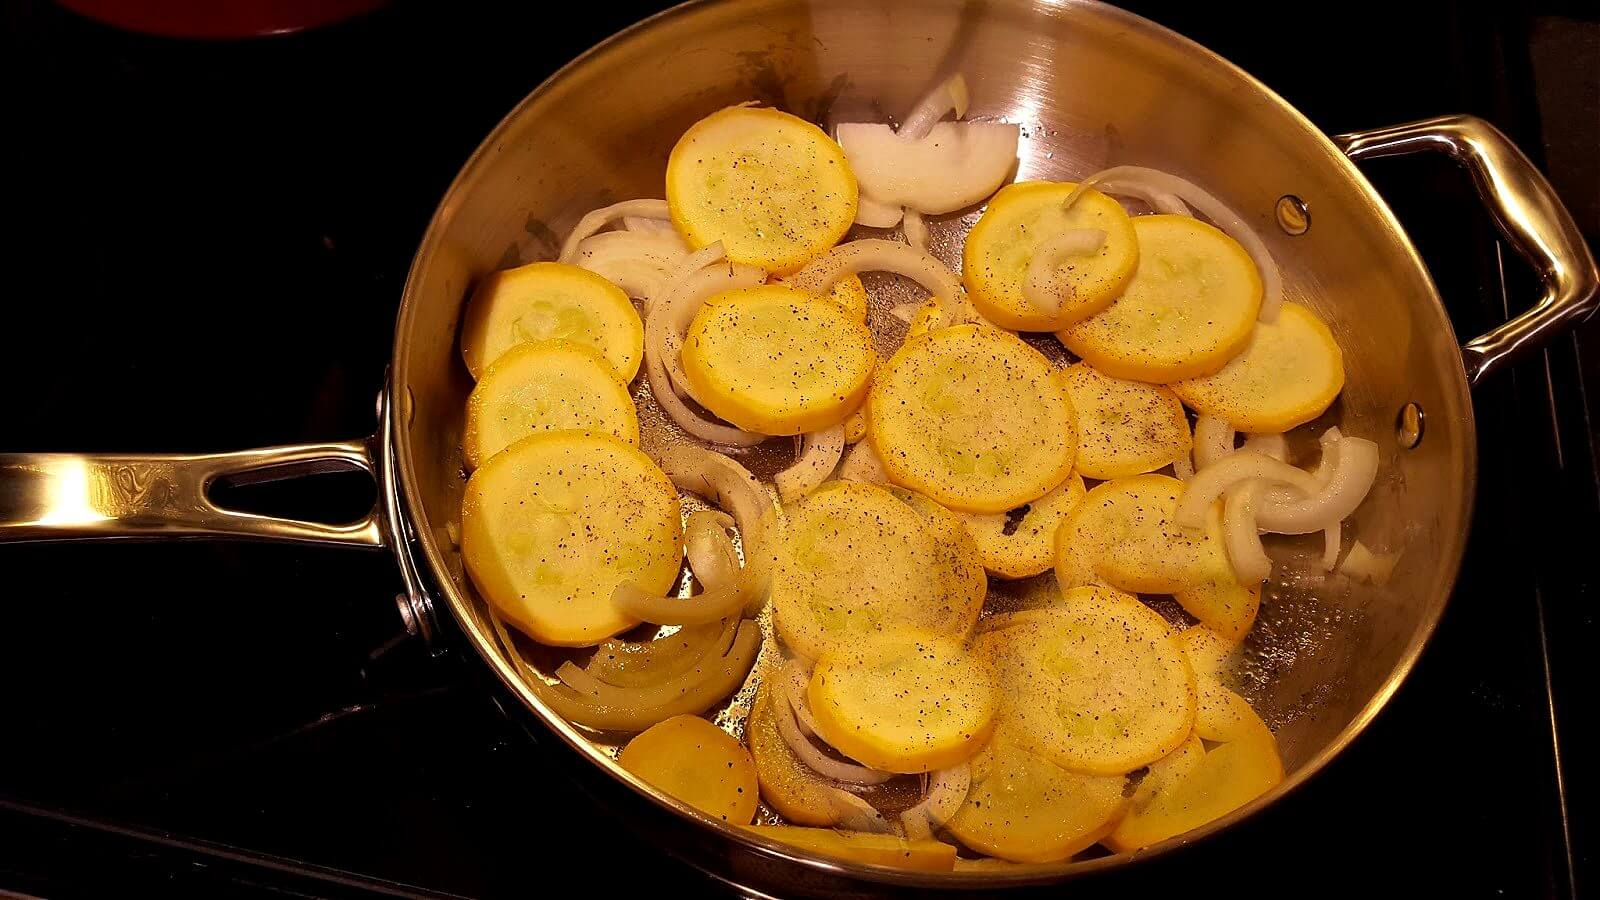 Skillet with yellow squash and onions